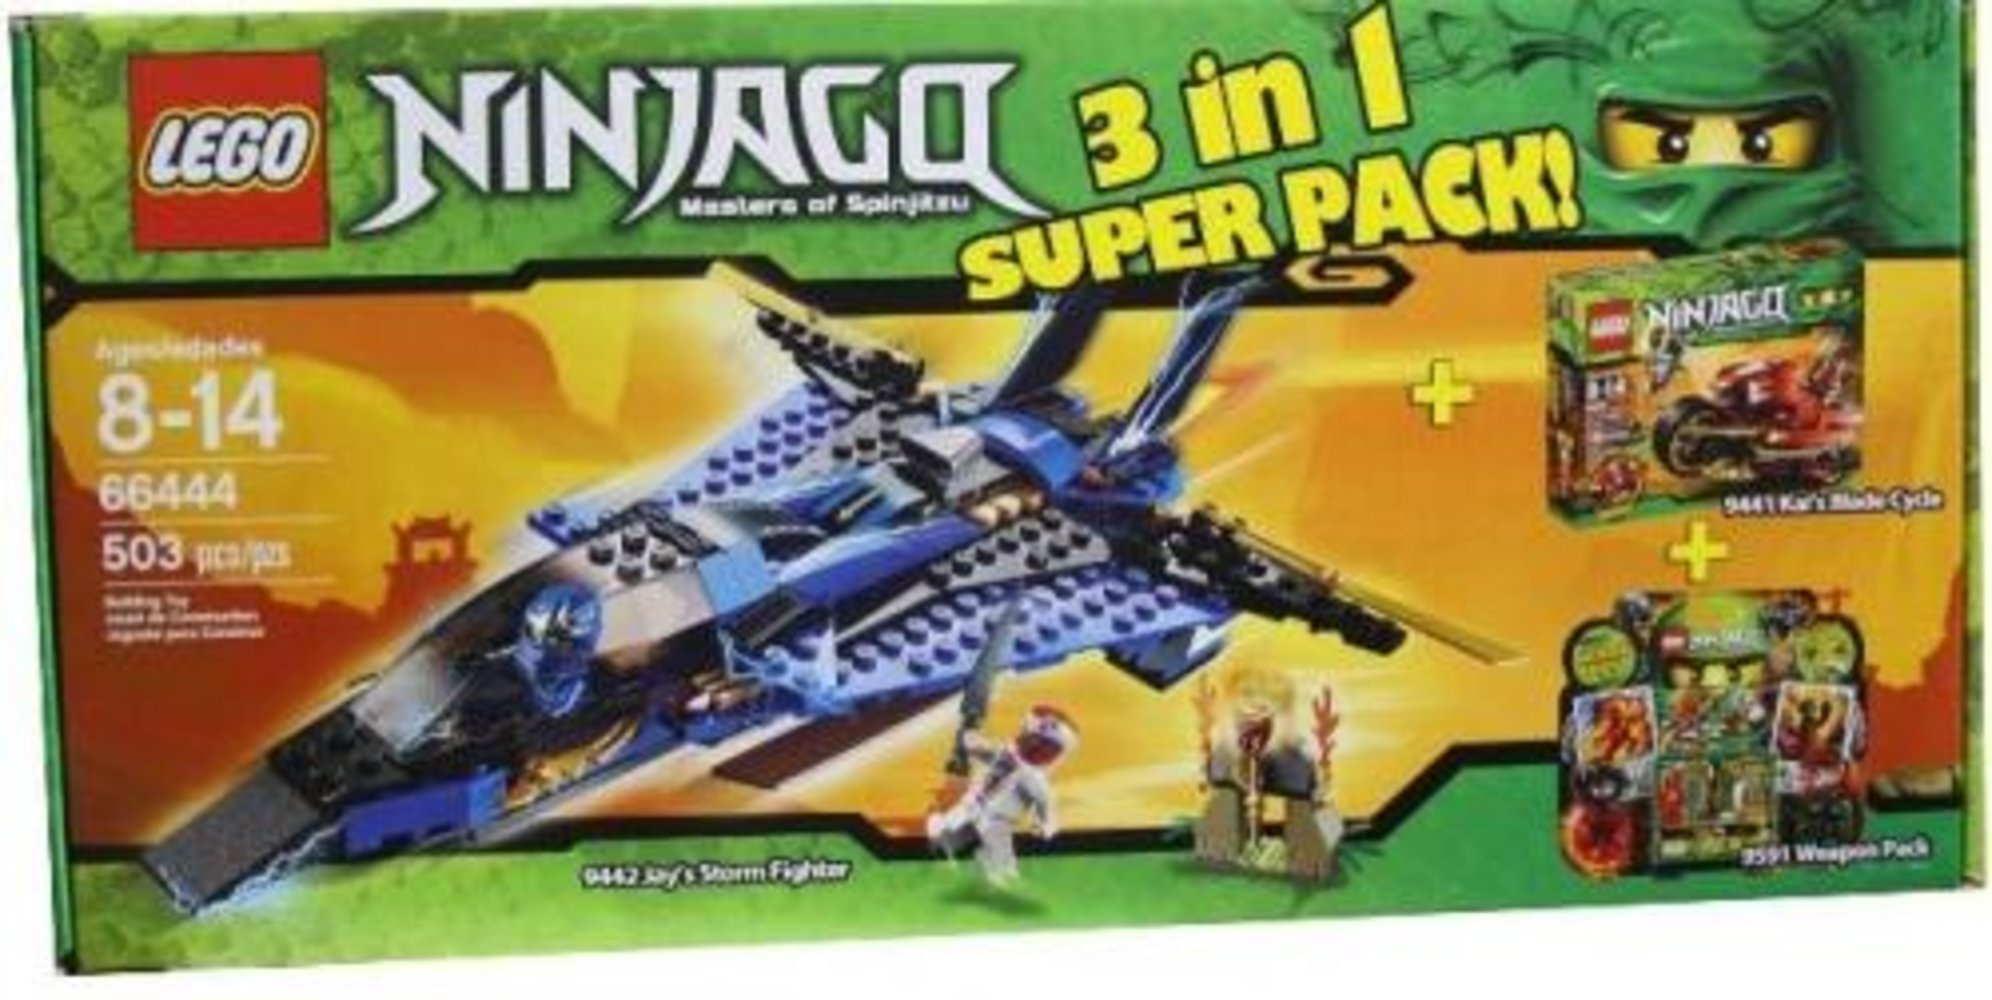 Super Pack 3 in 1